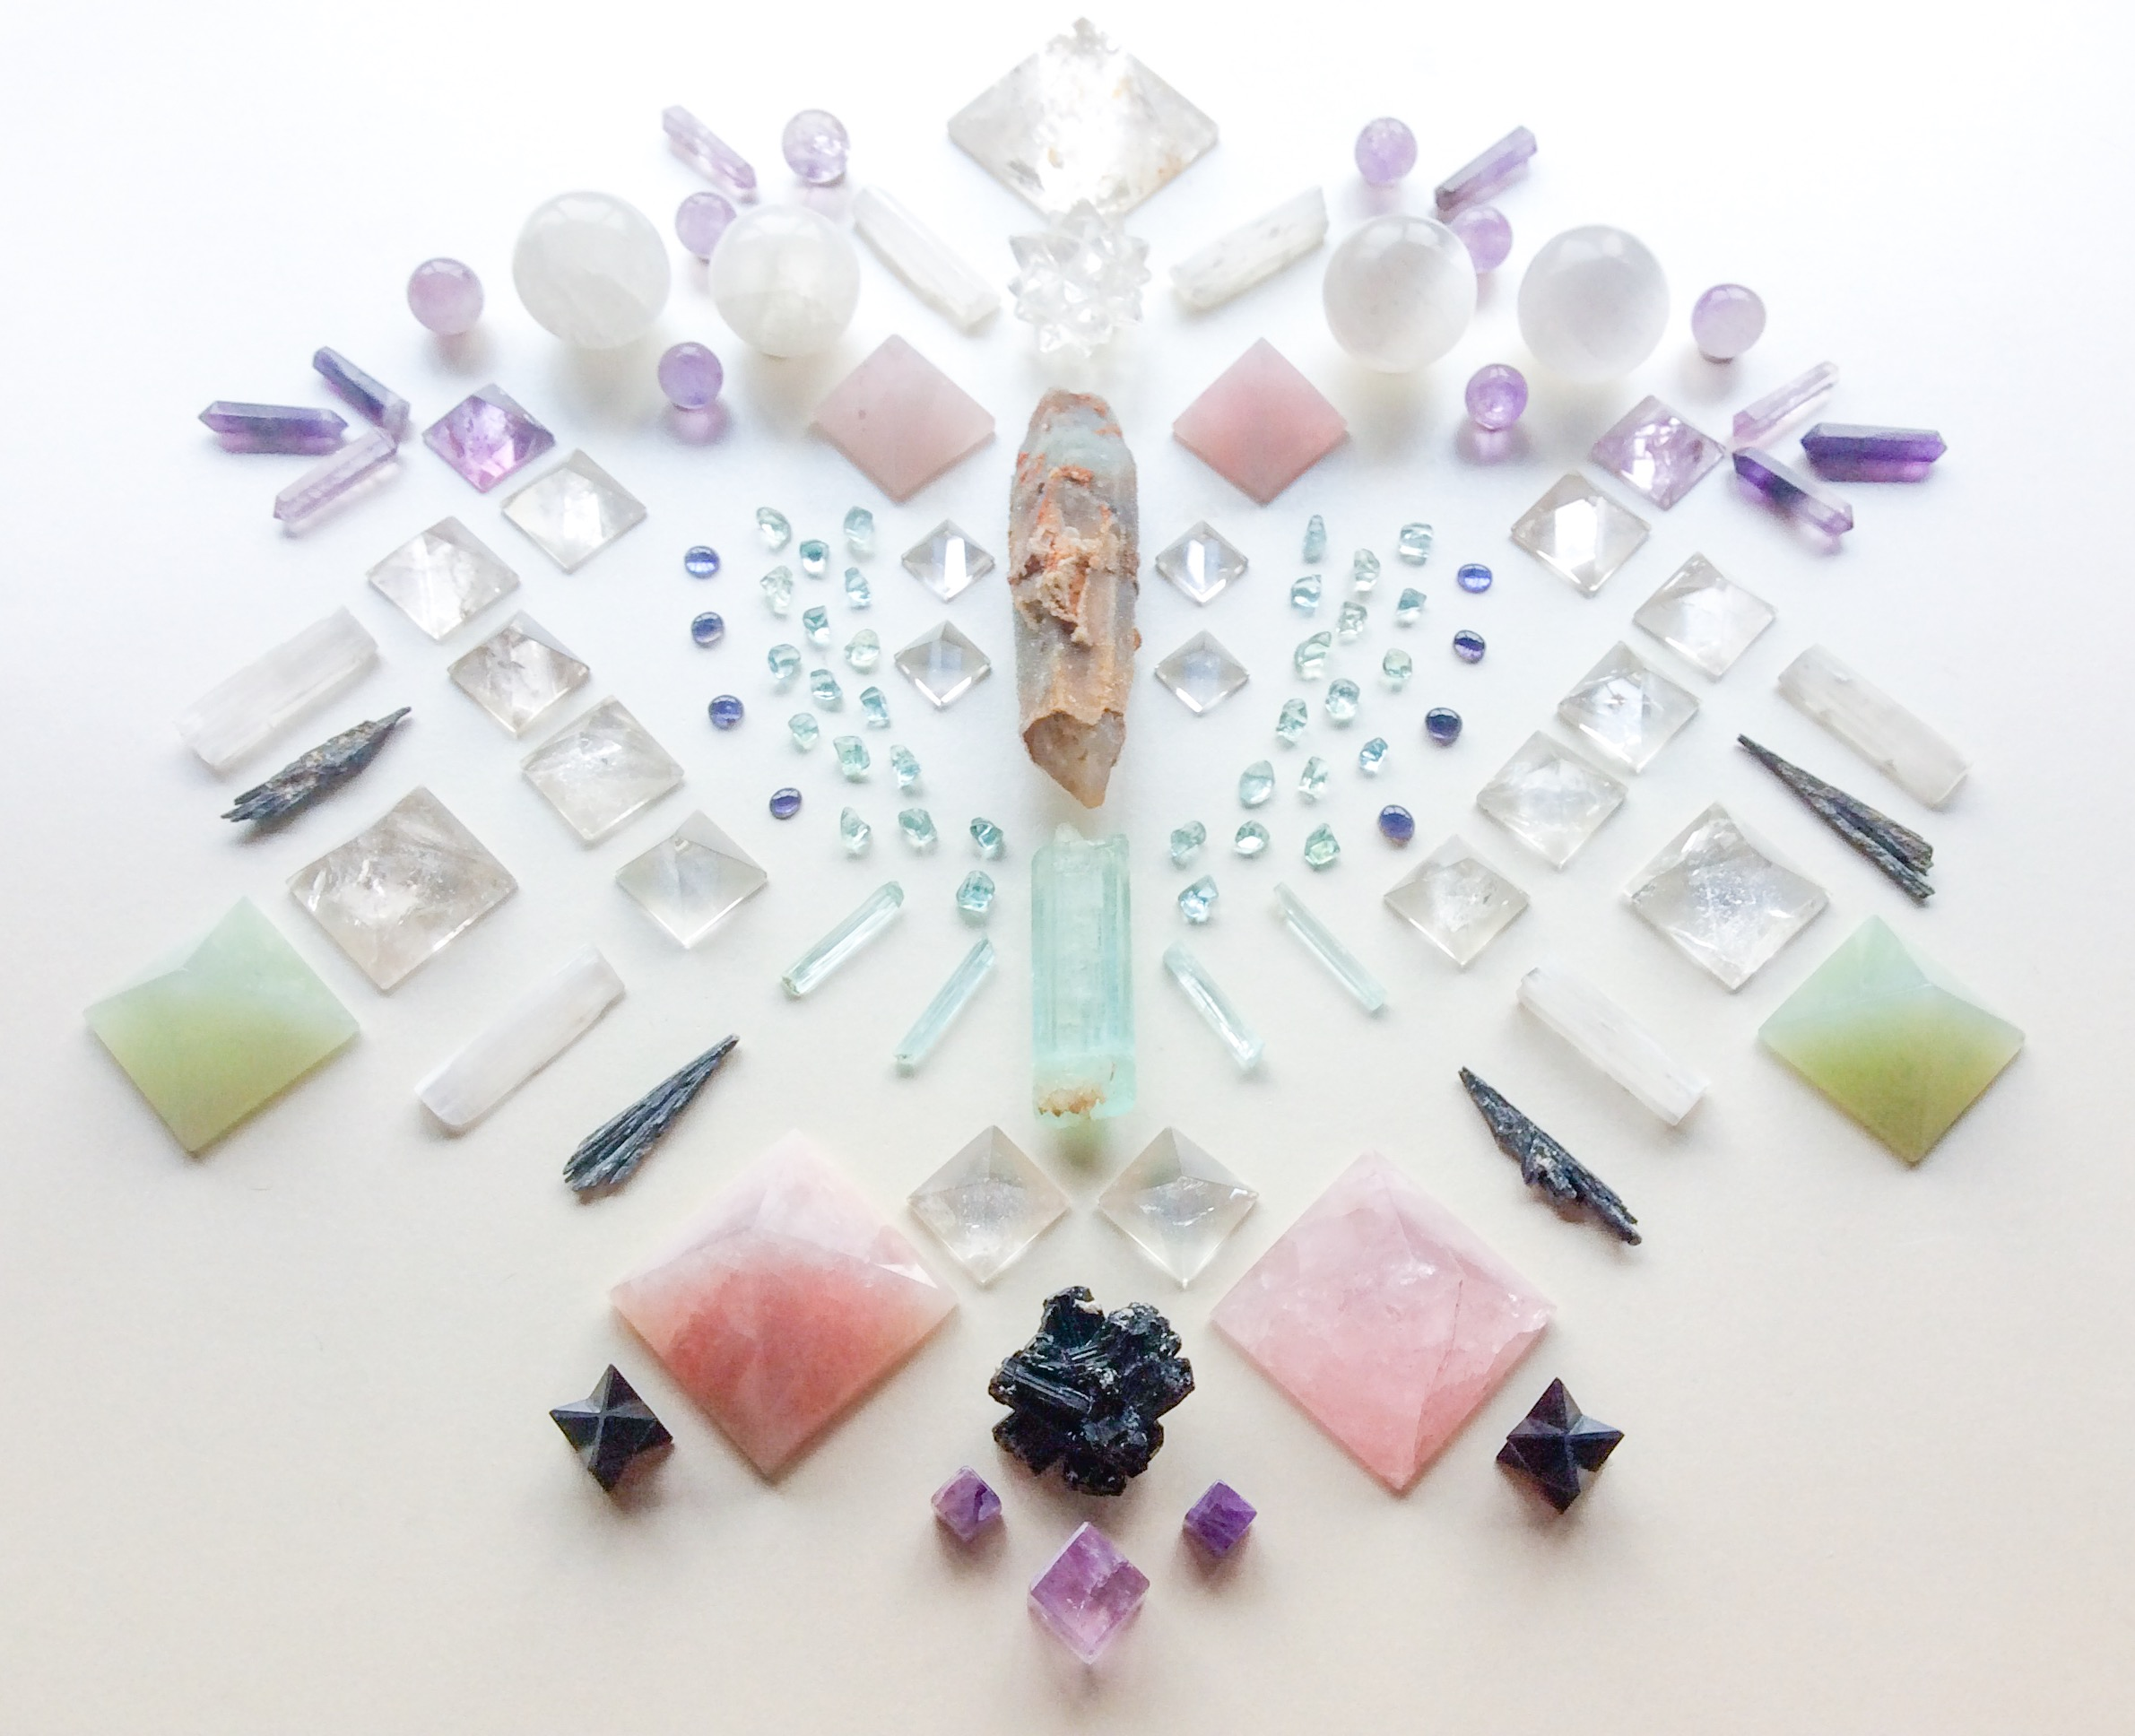 Quartz, Aquamarine, Iolite, Tanzanite, Rose Quartz, Selenite, Amethyst, Taramite, Schörl, Shungite and Jade